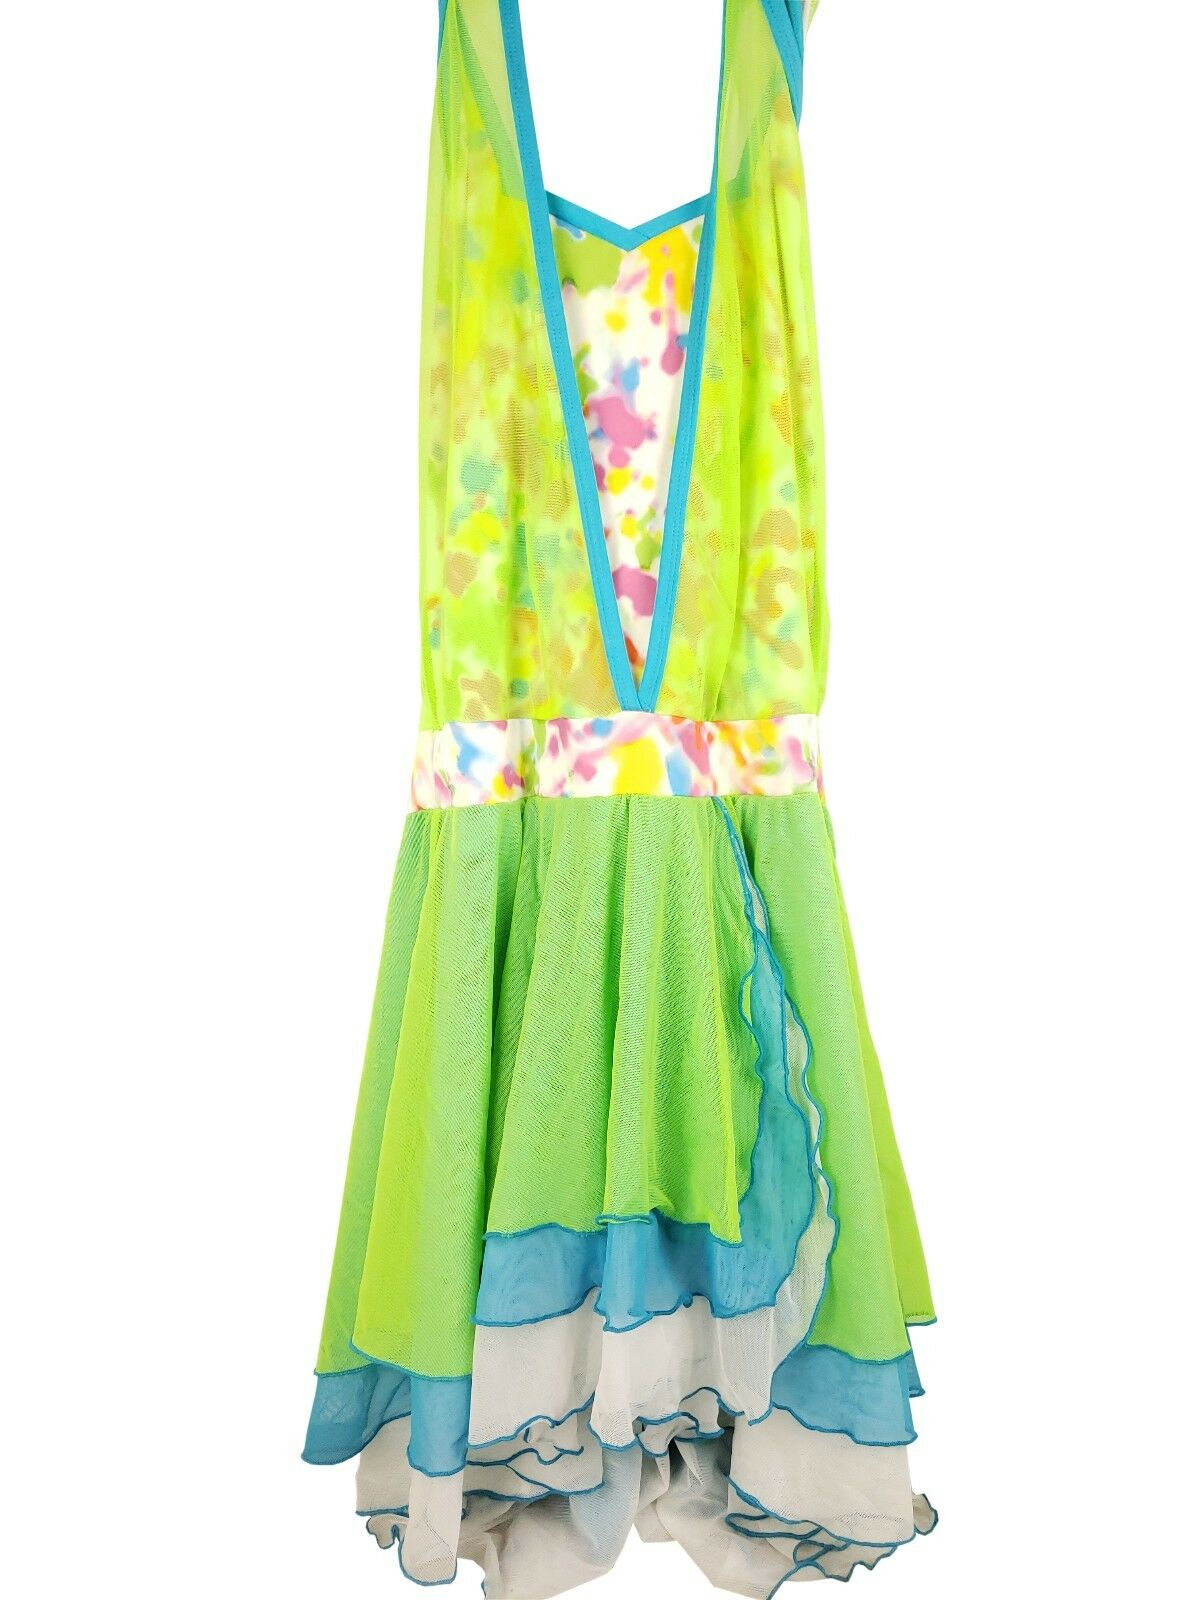 Green Mos w  Crooy Design Recital Dance  Costume - Women's Adult Large  promotions